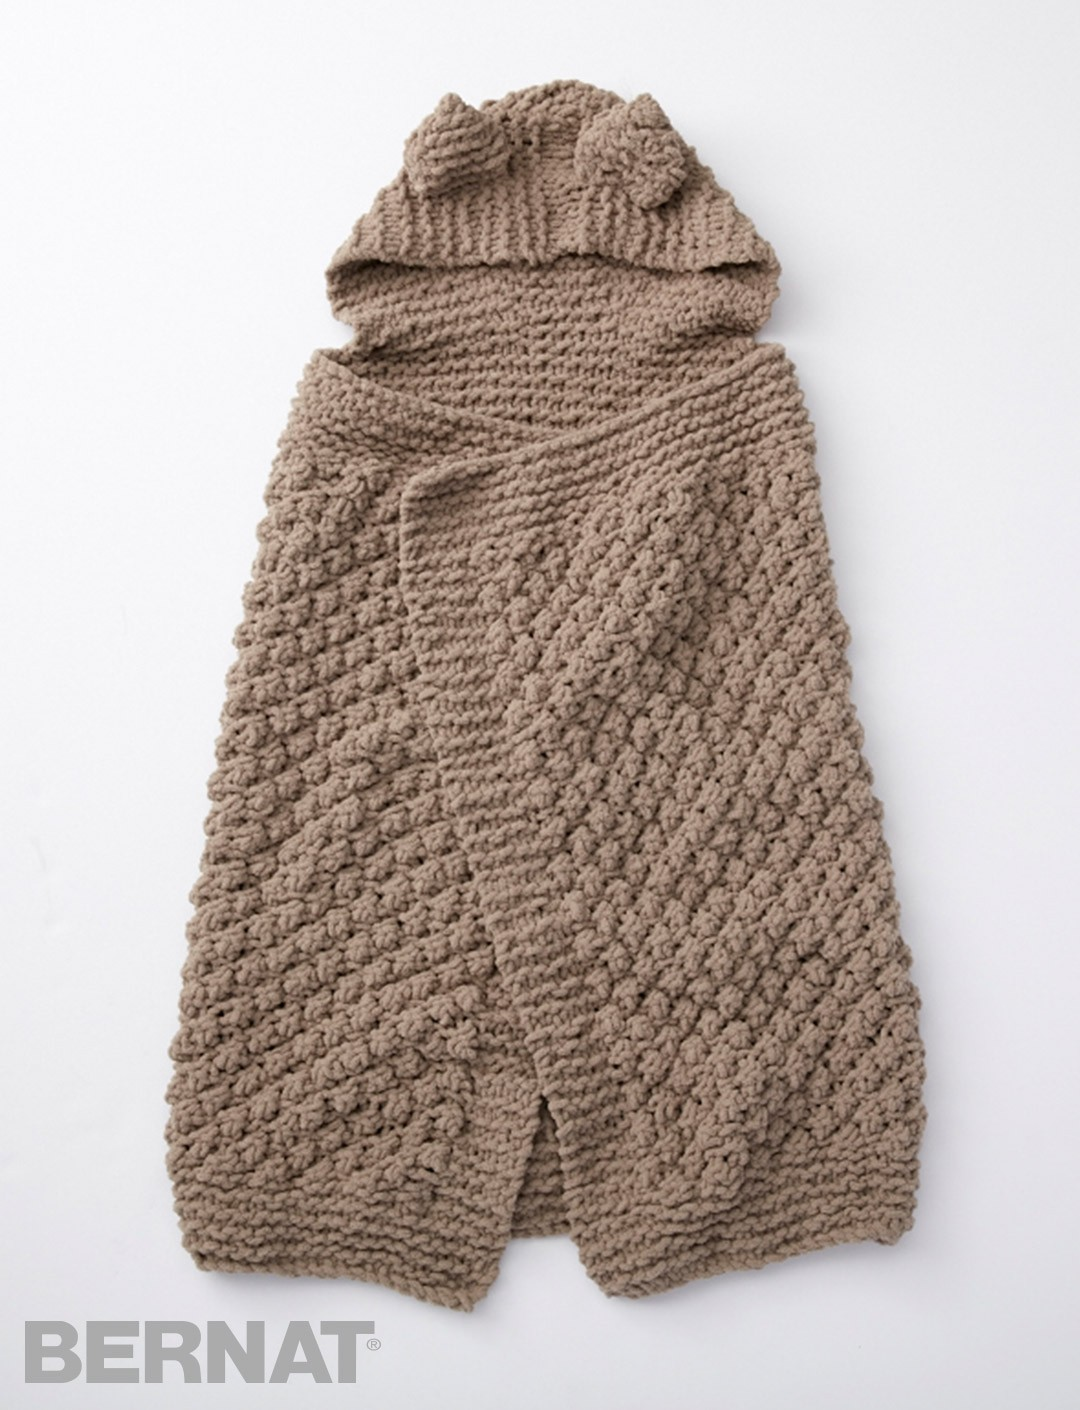 Bernat Knitting Patterns Free : Bernat Squirreled Away Blanket, Knit Pattern Yarnspirations